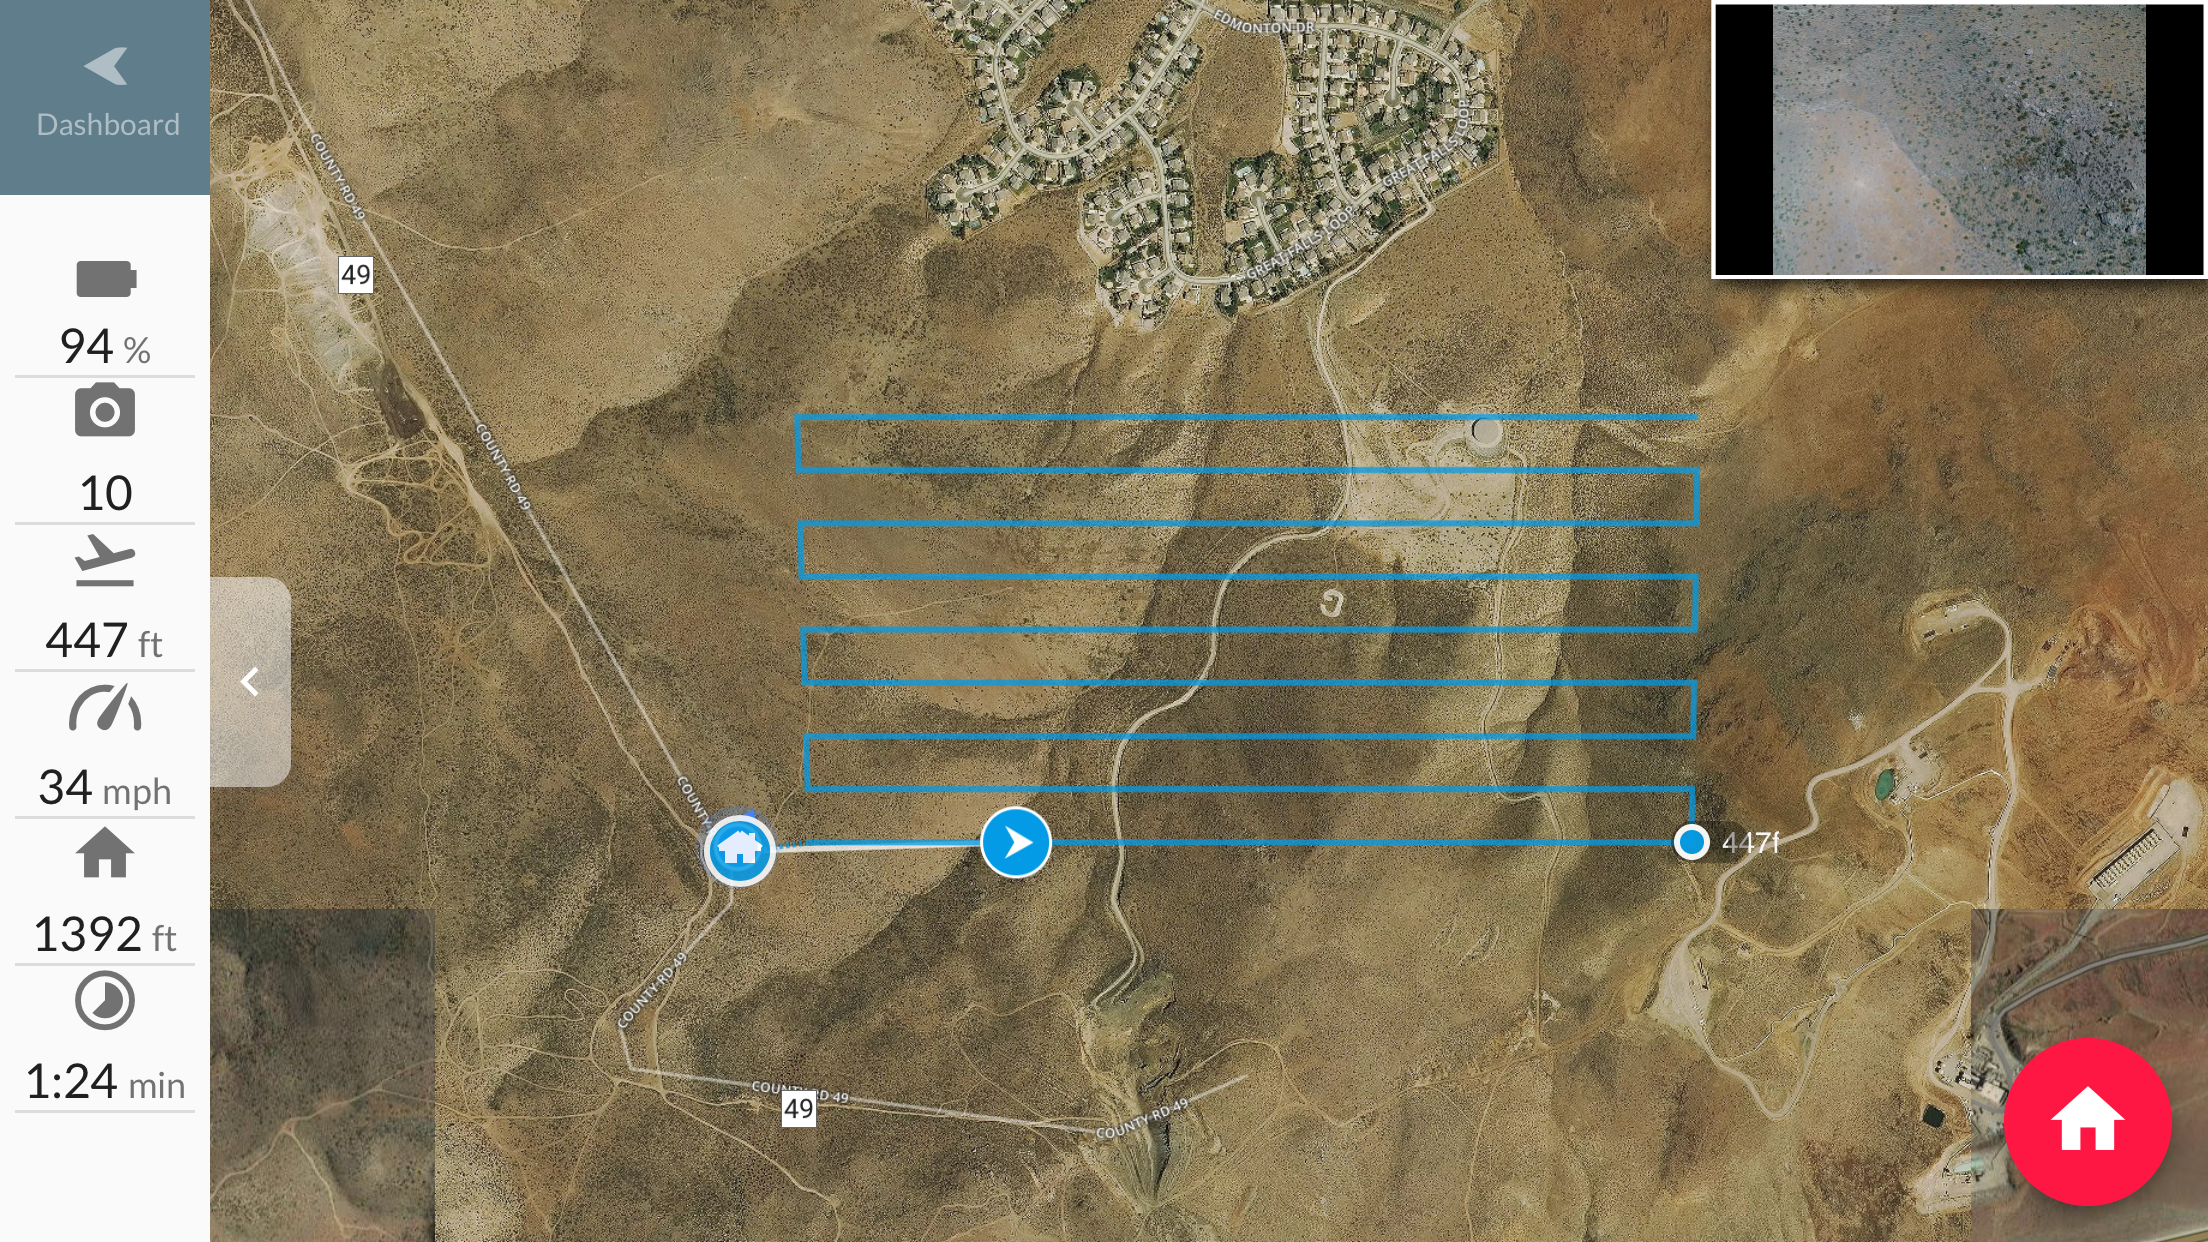 Intro To Drones Part 1 Drone Basics Digital Photography Review Make Yourself Visible Others When Your Flying Strobe Lights One Of The Intelligent Flight Modes Waypoints Seen Here Can Turn Phantom 4 Pro Into A Powerful Surveying Tool That Has Ability Collect Data